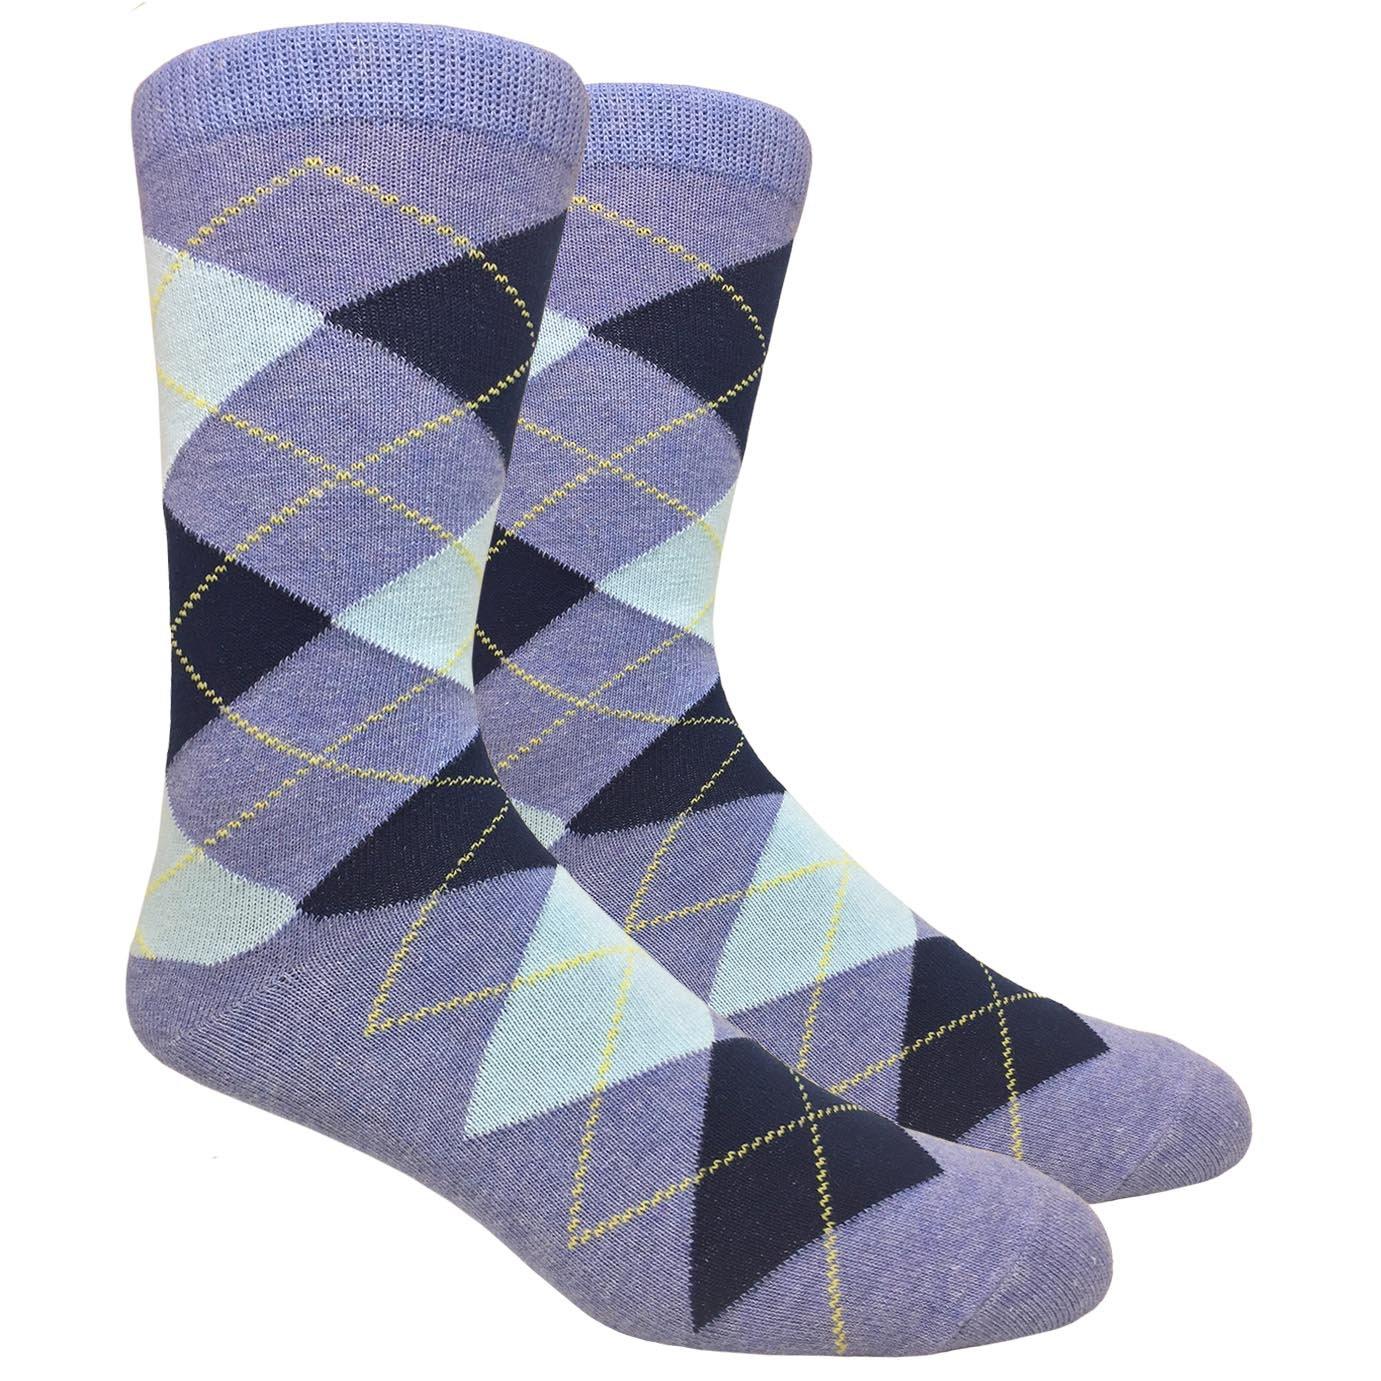 FineFit Black Label Argyle Socks - Heather Blue